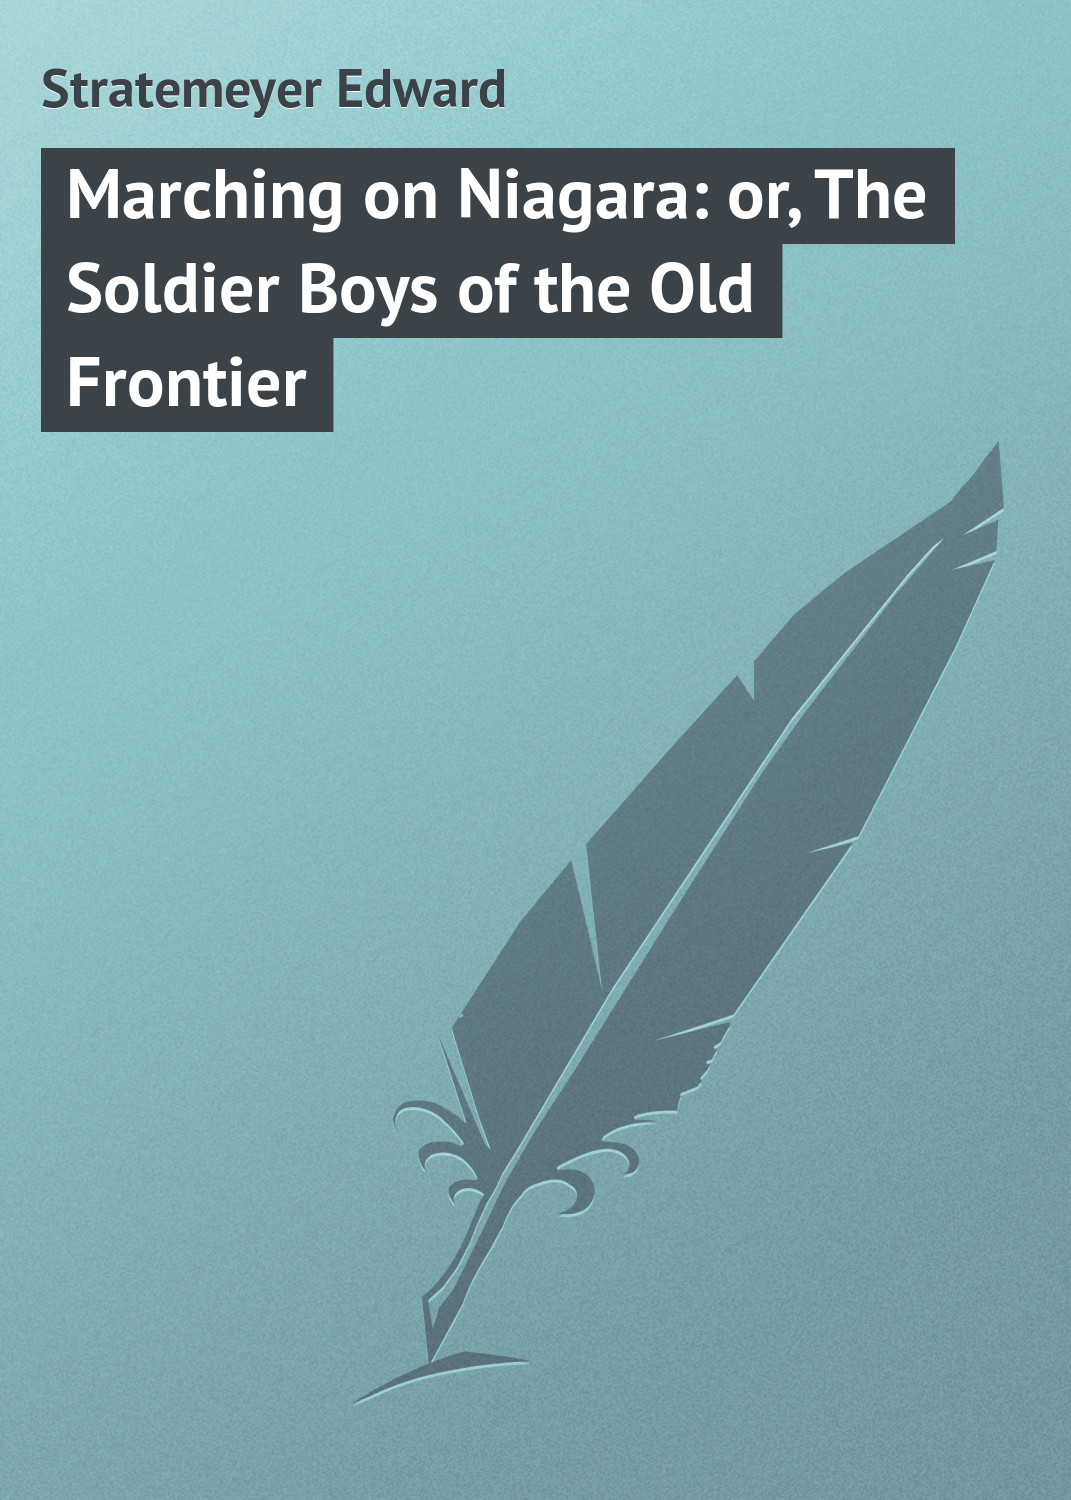 Stratemeyer Edward Marching on Niagara: or, The Soldier Boys of the Old Frontier